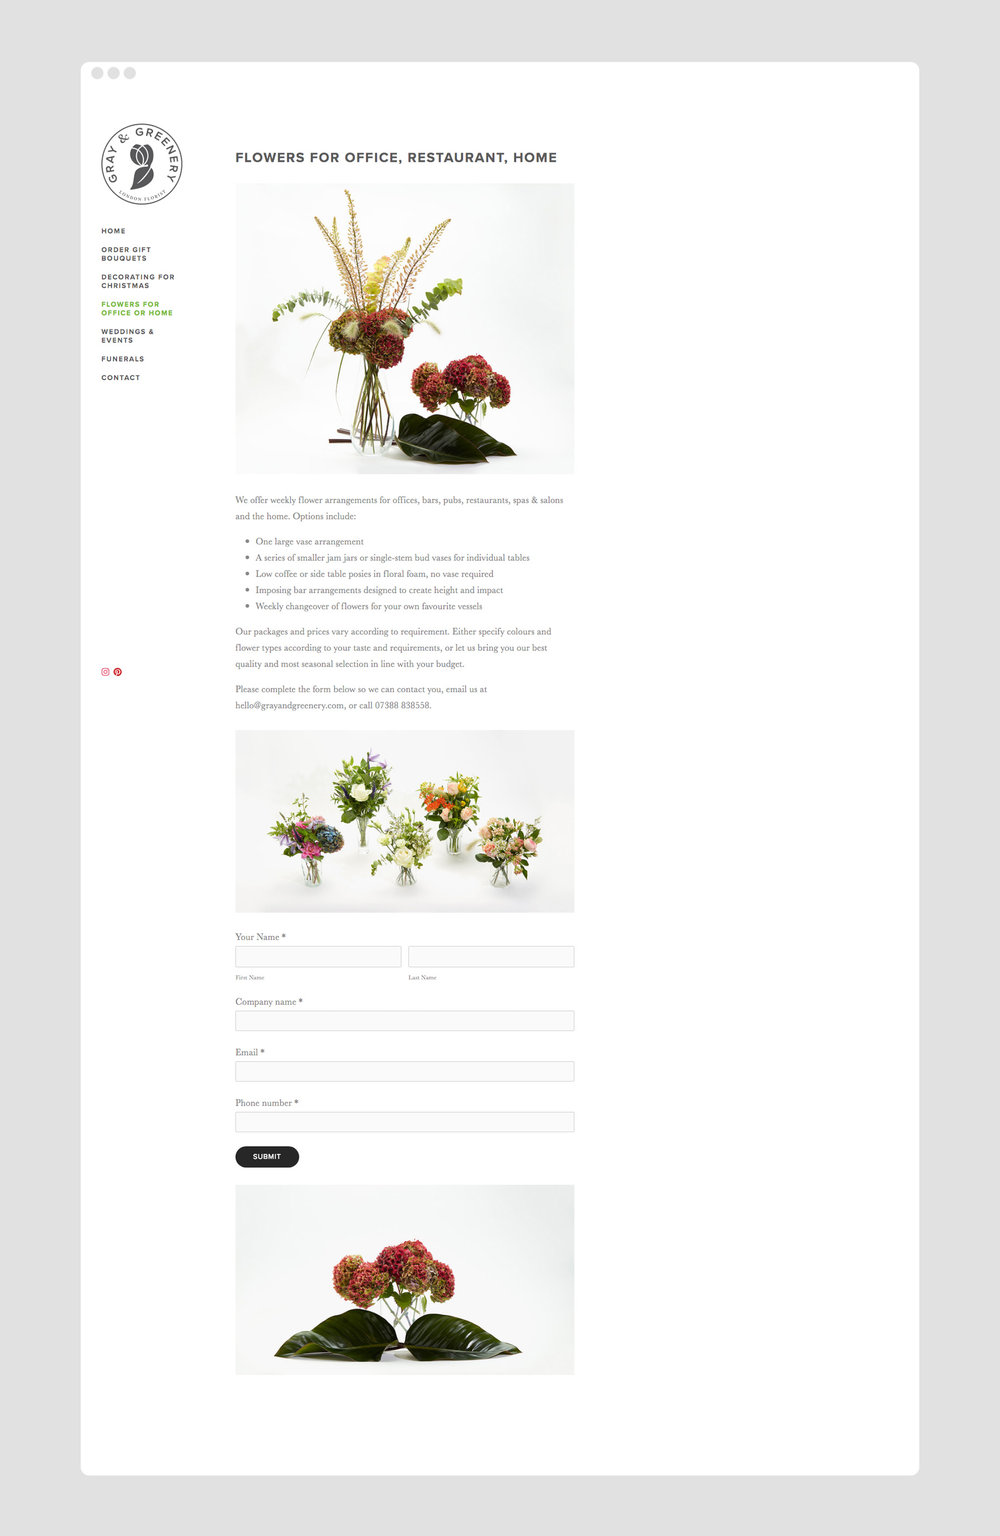 grayandgreenery-brand-and-design-by-ALSOAgency-CONTRACT.jpg